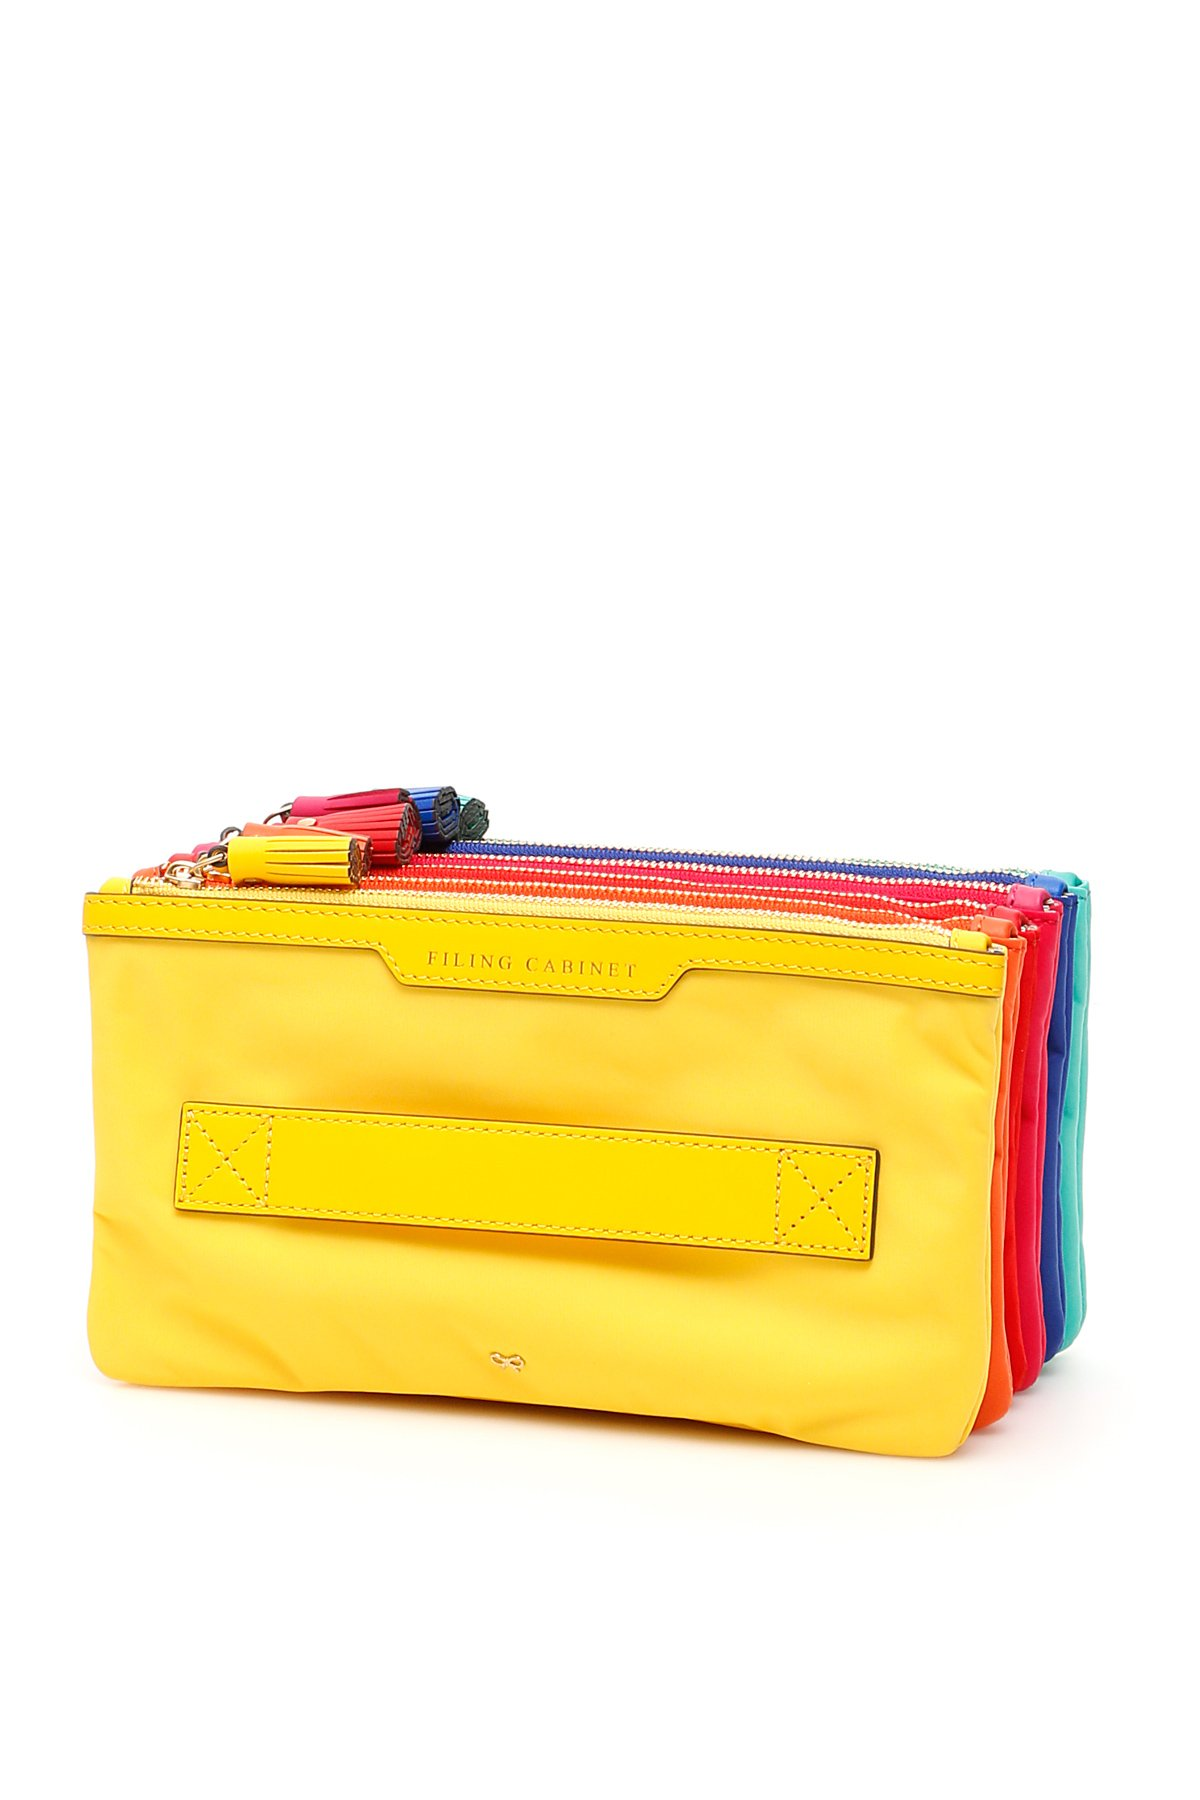 Anya hindmarch pouch filing cabinet multi pocket